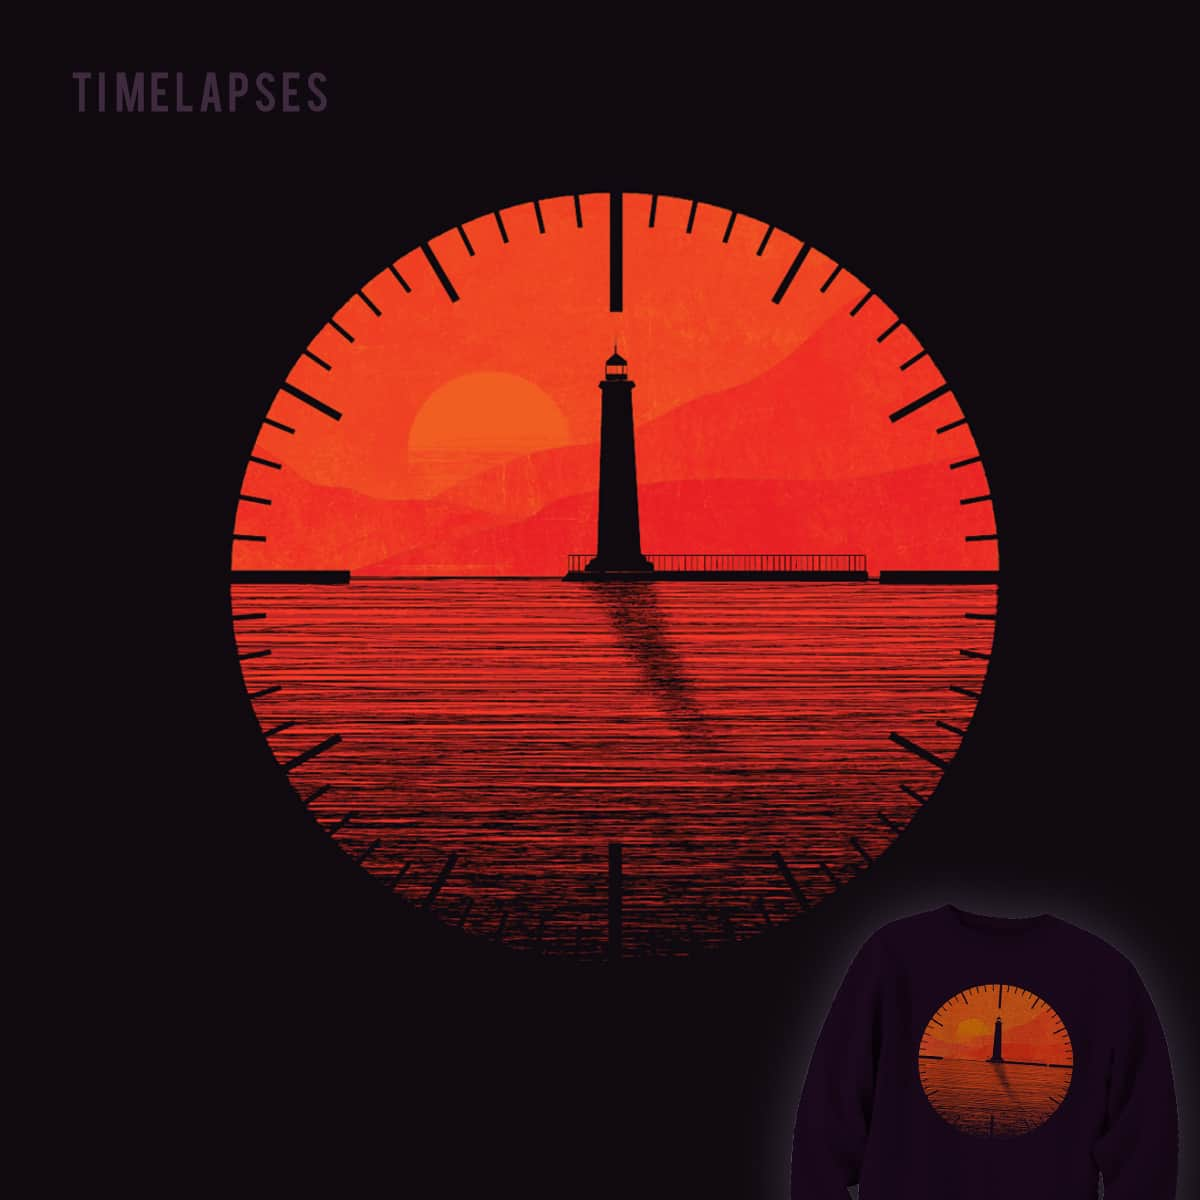 Timelapses  by halfgotten on Threadless